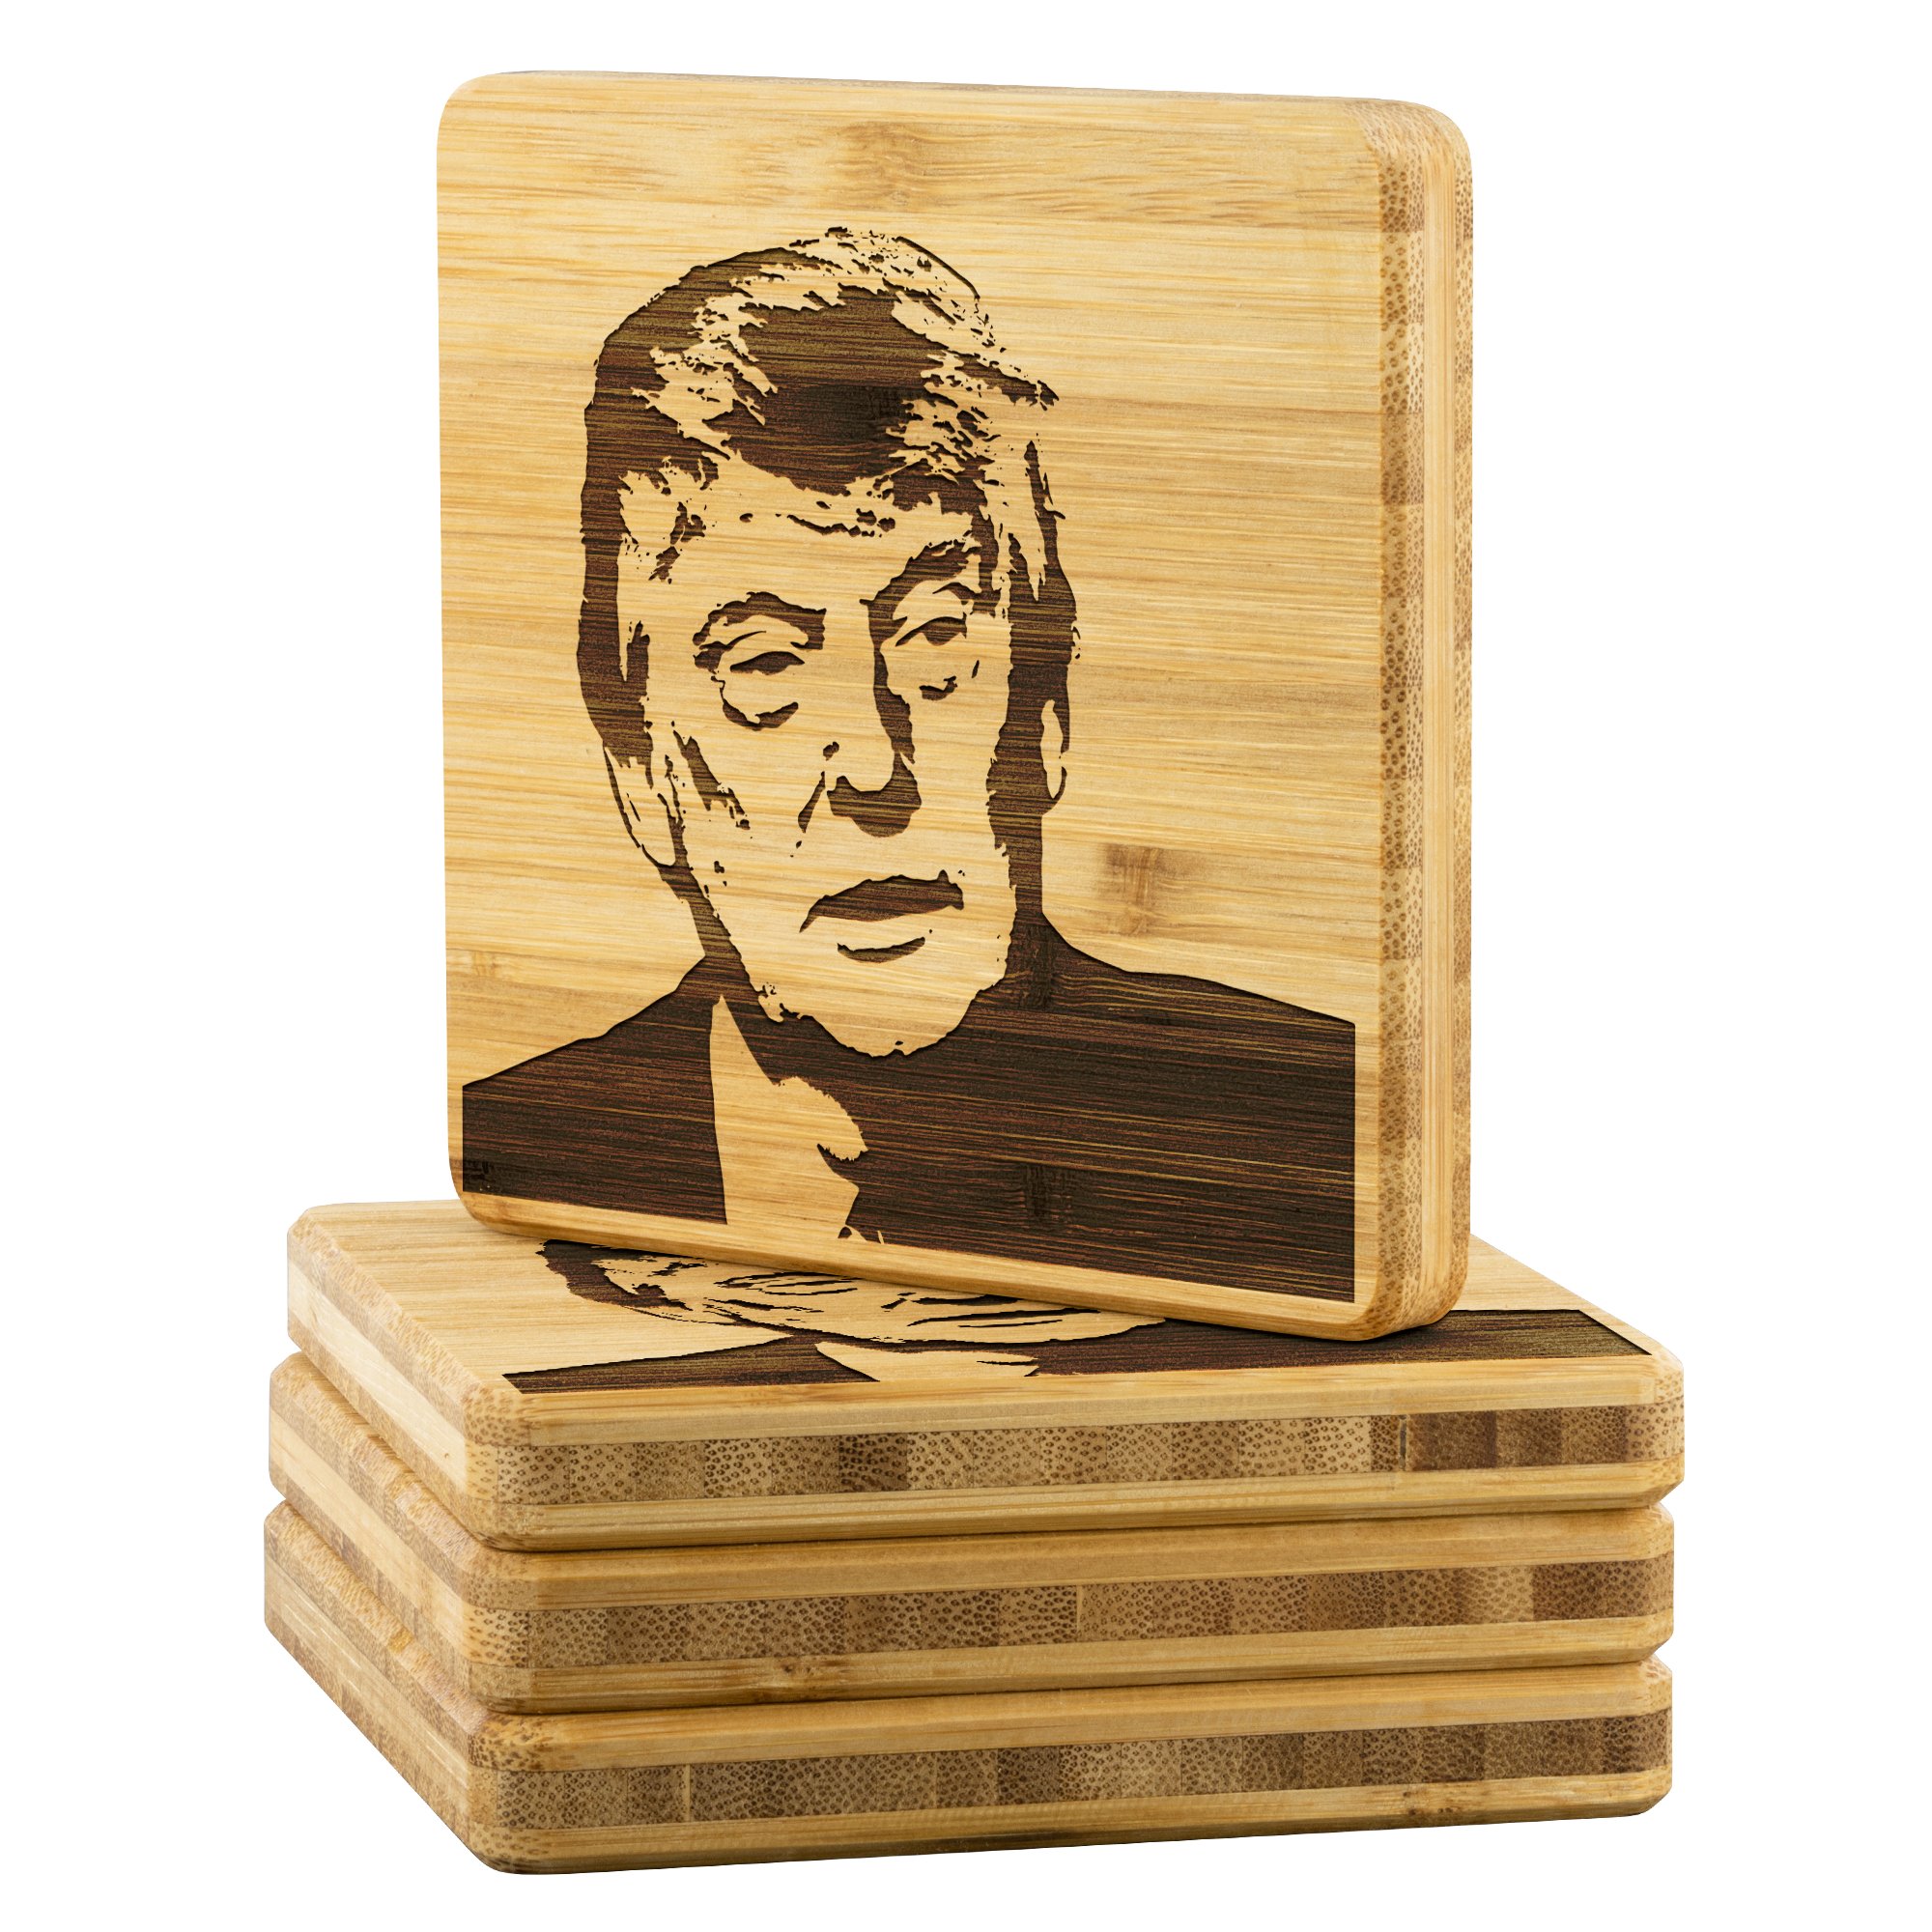 Donald J Trump - Bamboo coaster (set of 4)